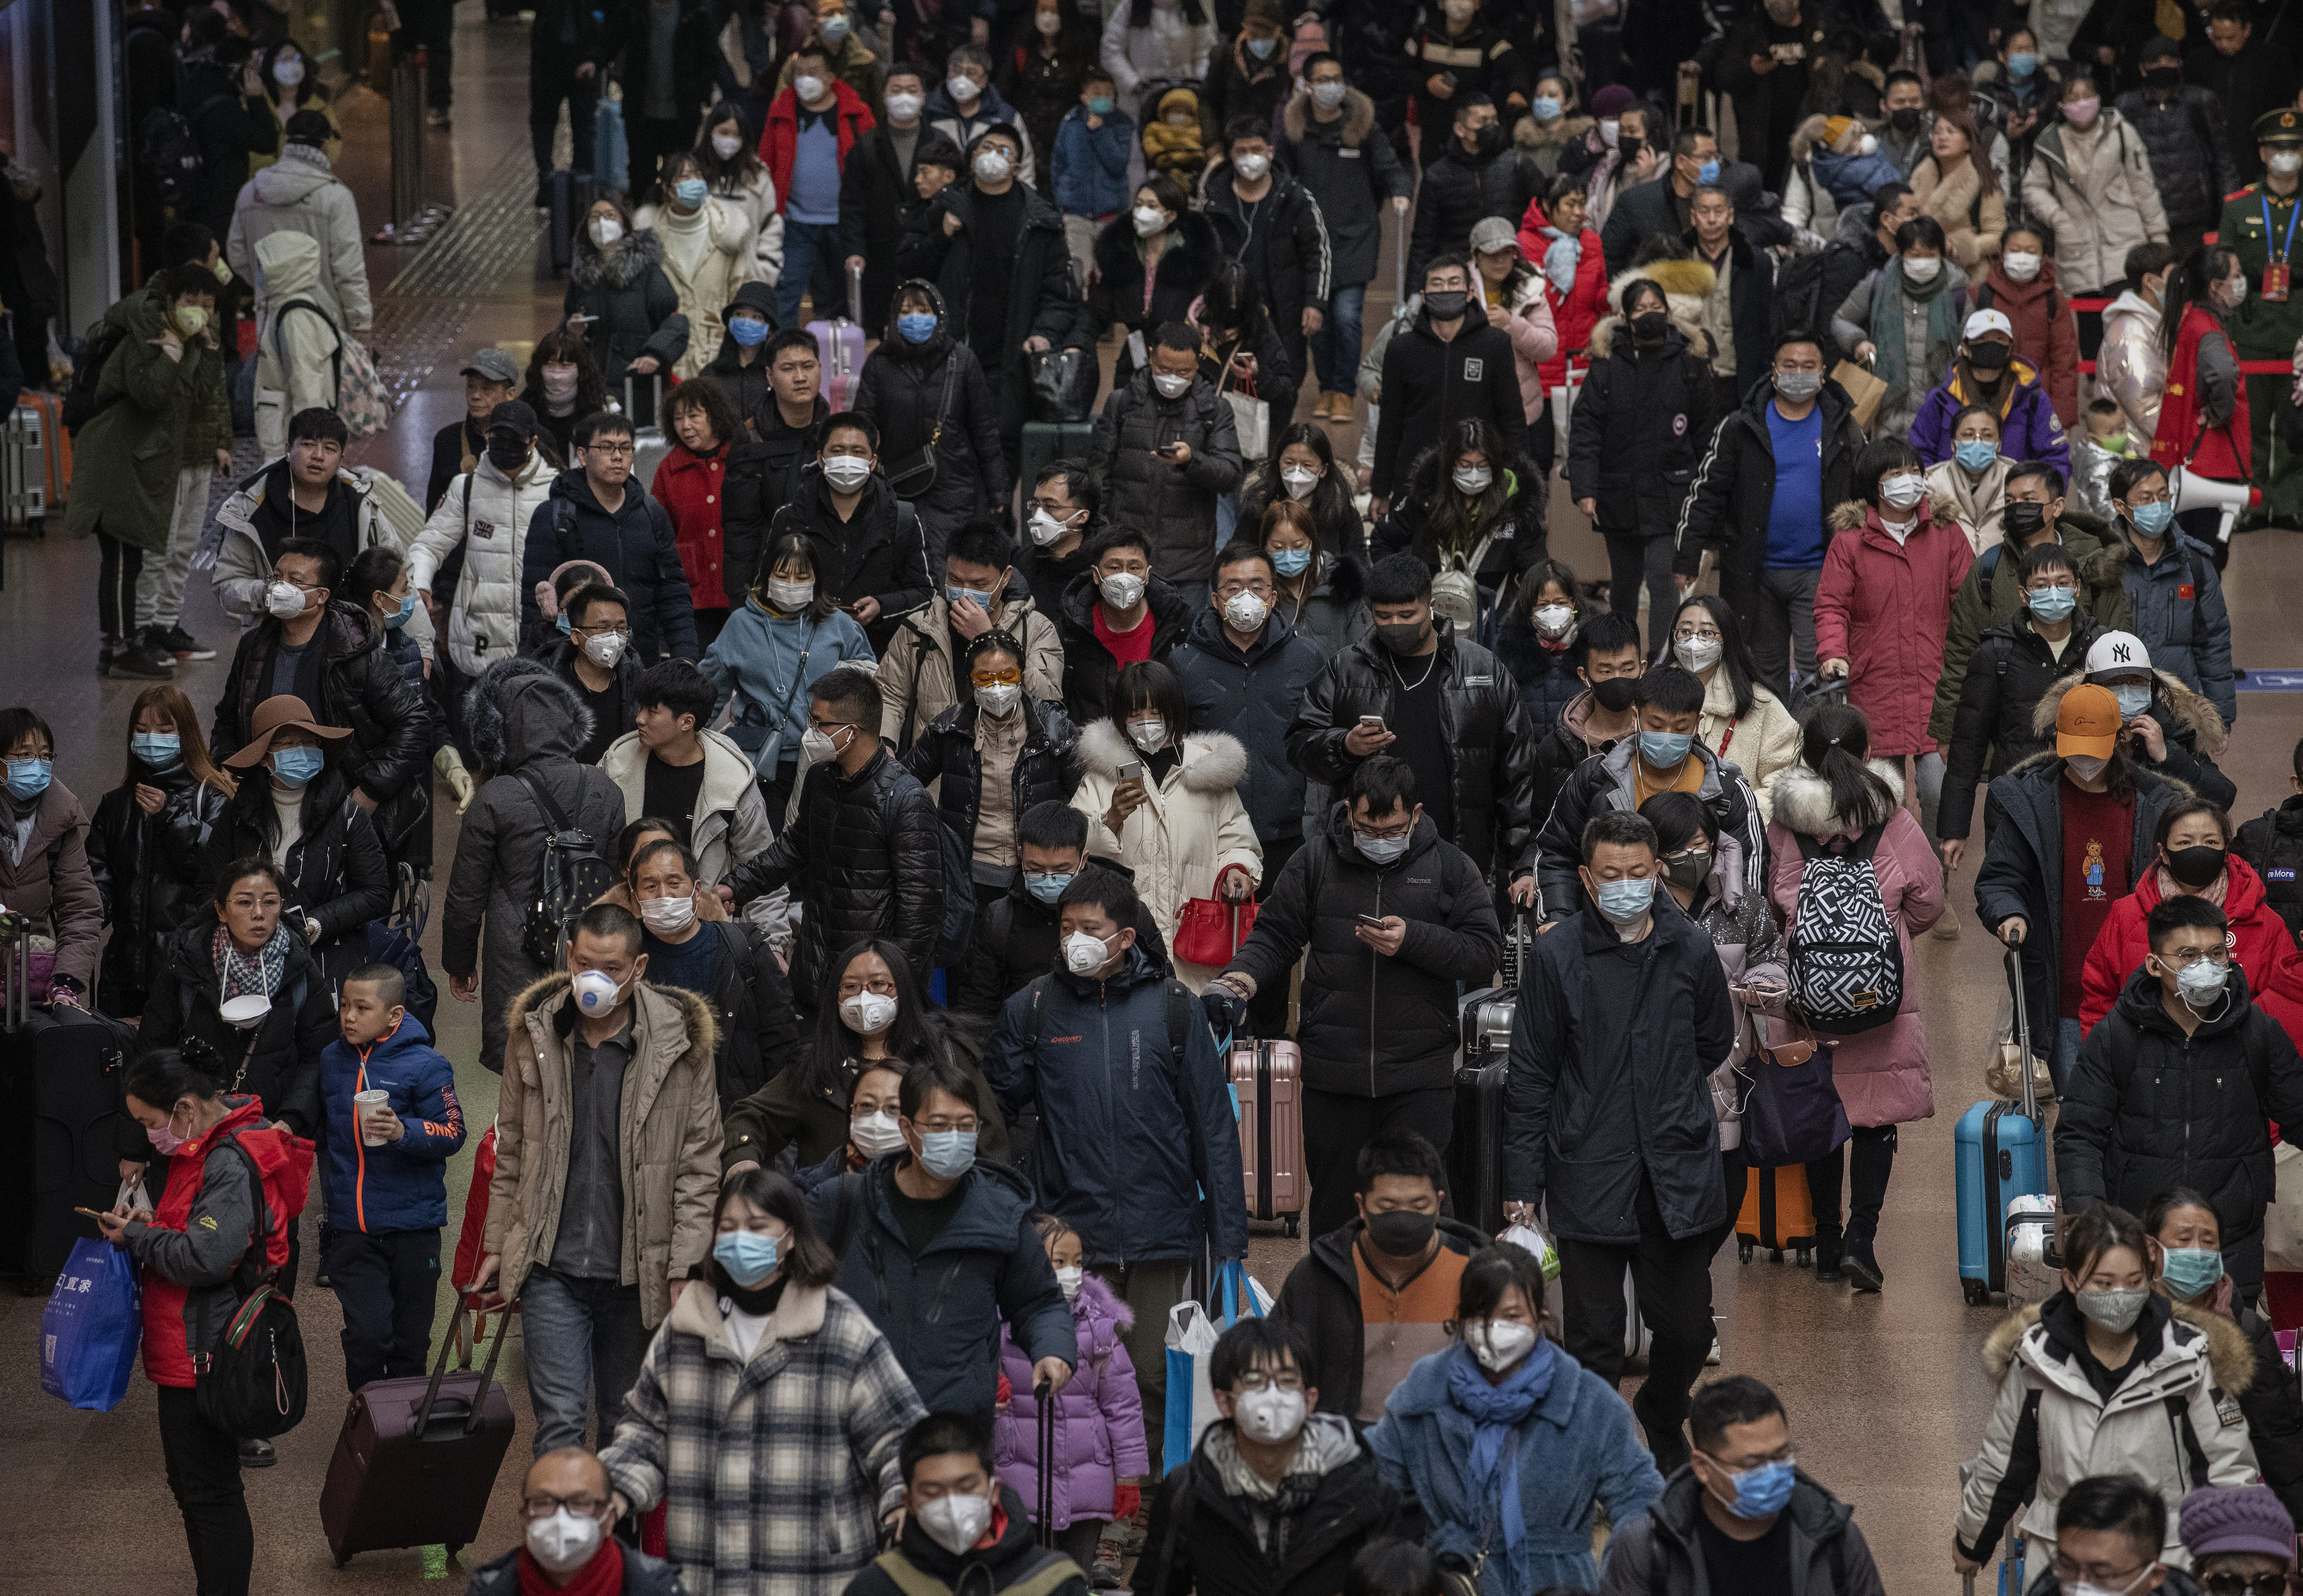 Chinese passengers, most wearing masks, arrive to board trains before the annual Spring Festival at a Beijing railway station amid the coronavirus outbreak